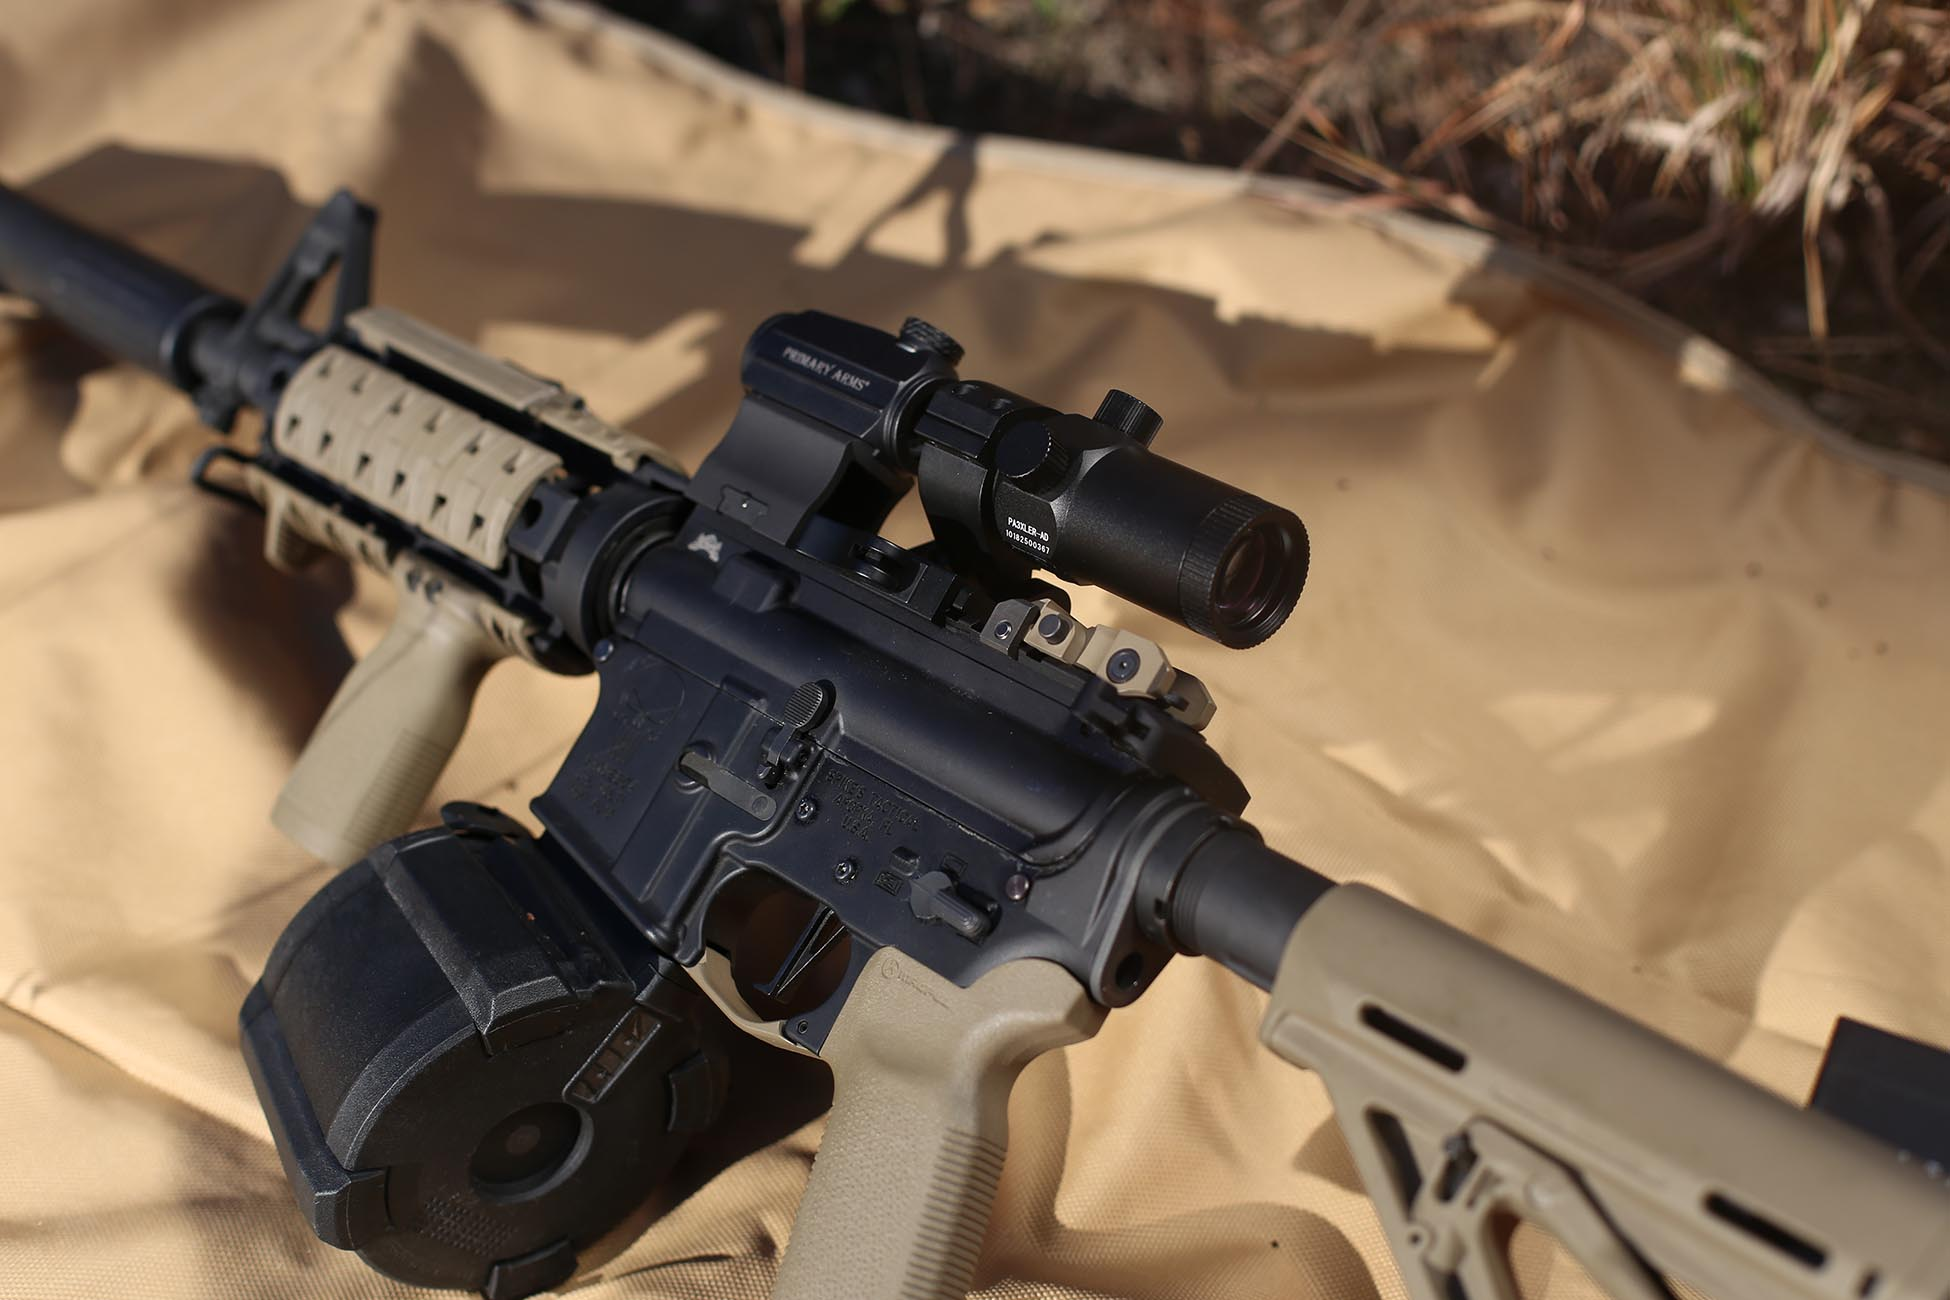 Magpul D60 Drum Magazine in an AR15 rifle